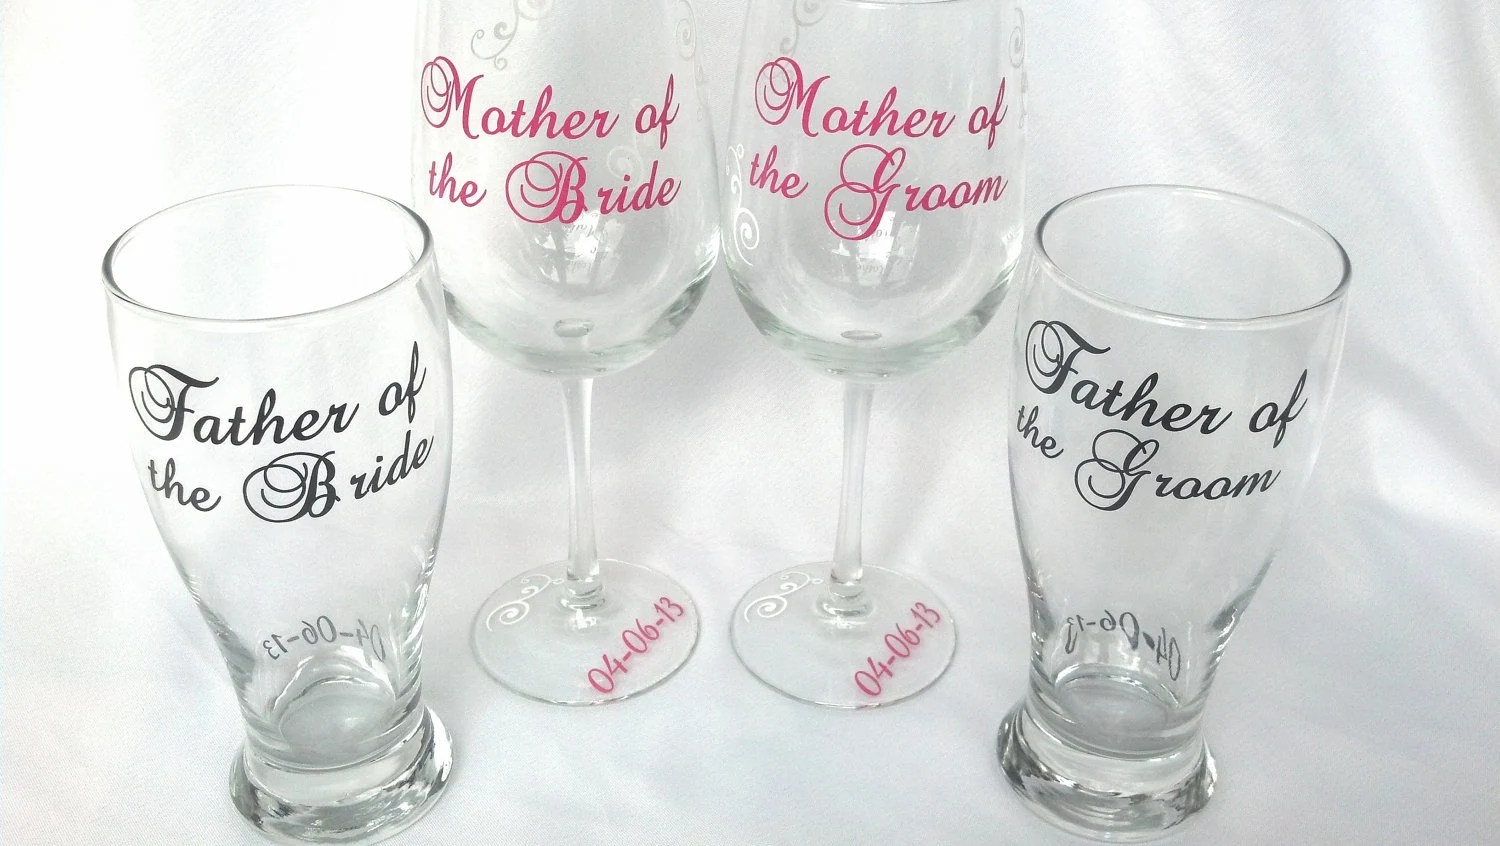 Wedding parents of the bride and groom personalized glasses.  1 glass for Mother and Father of the Bride and Groom gift.